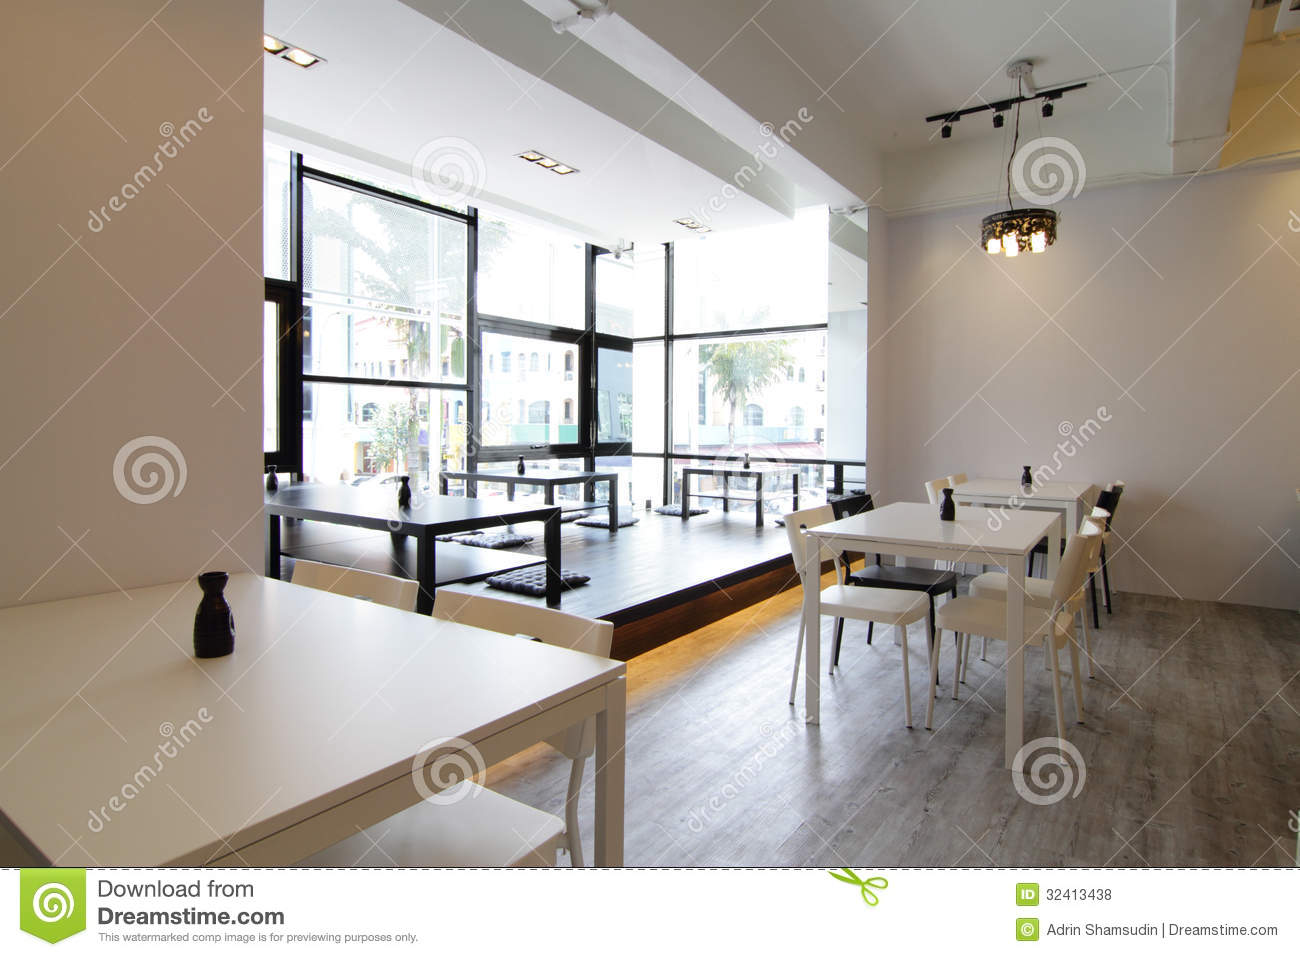 Modern Cafe Or Restaurant Stock Photo Image Of Tables 32413438